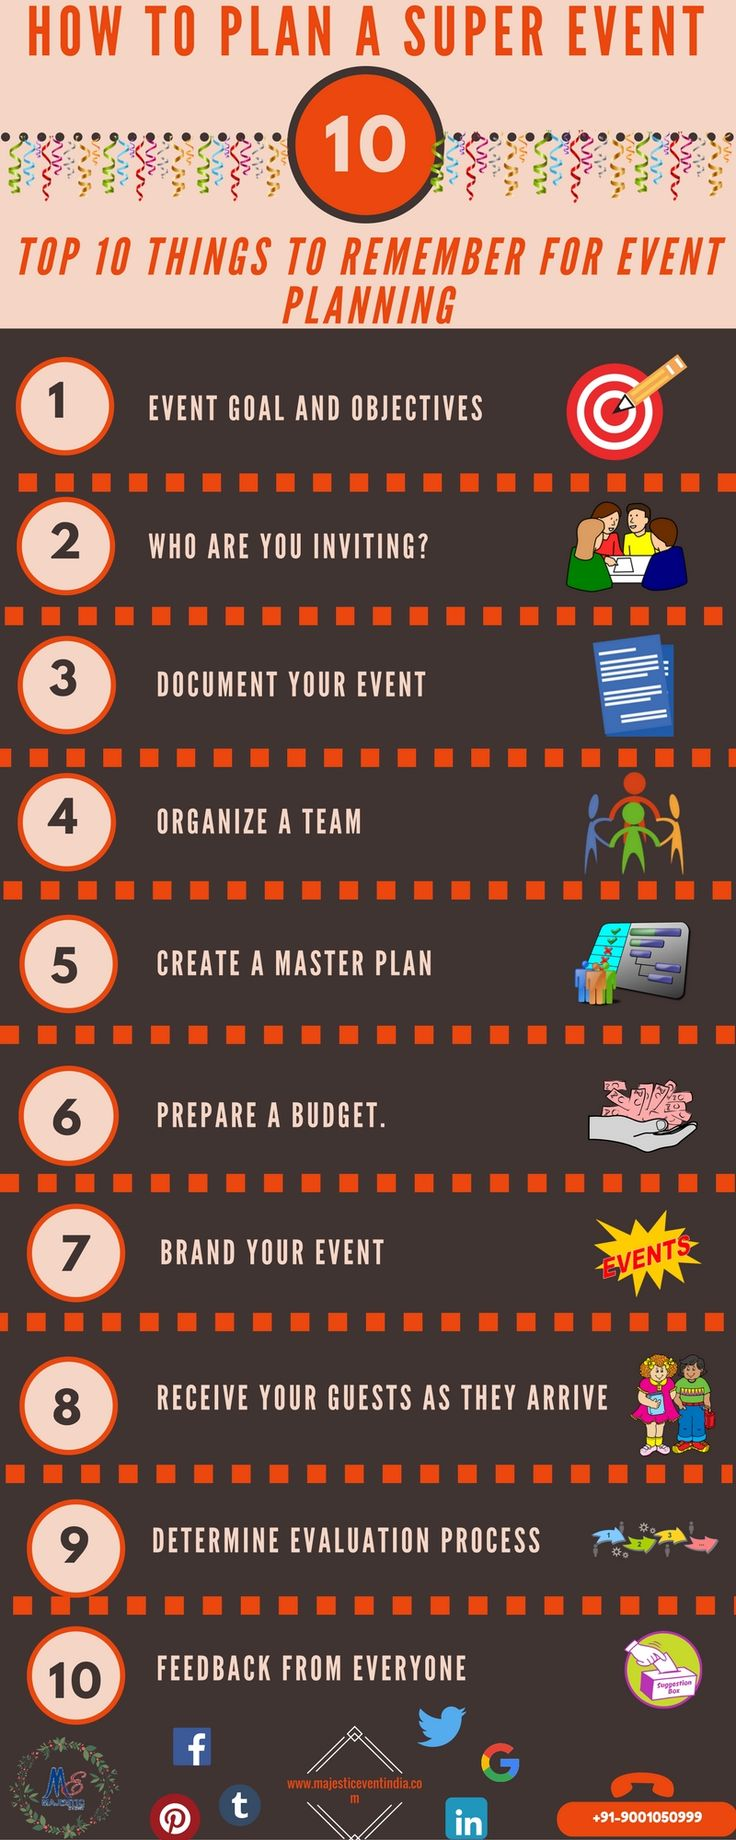 #How #To #Plan #a #Super #Event ?   Follow us on:-   Facebook :- https://www.facebook.com/profile.php?id=100013792114753  Twitter :- https://twitter.com/majesticeventi1